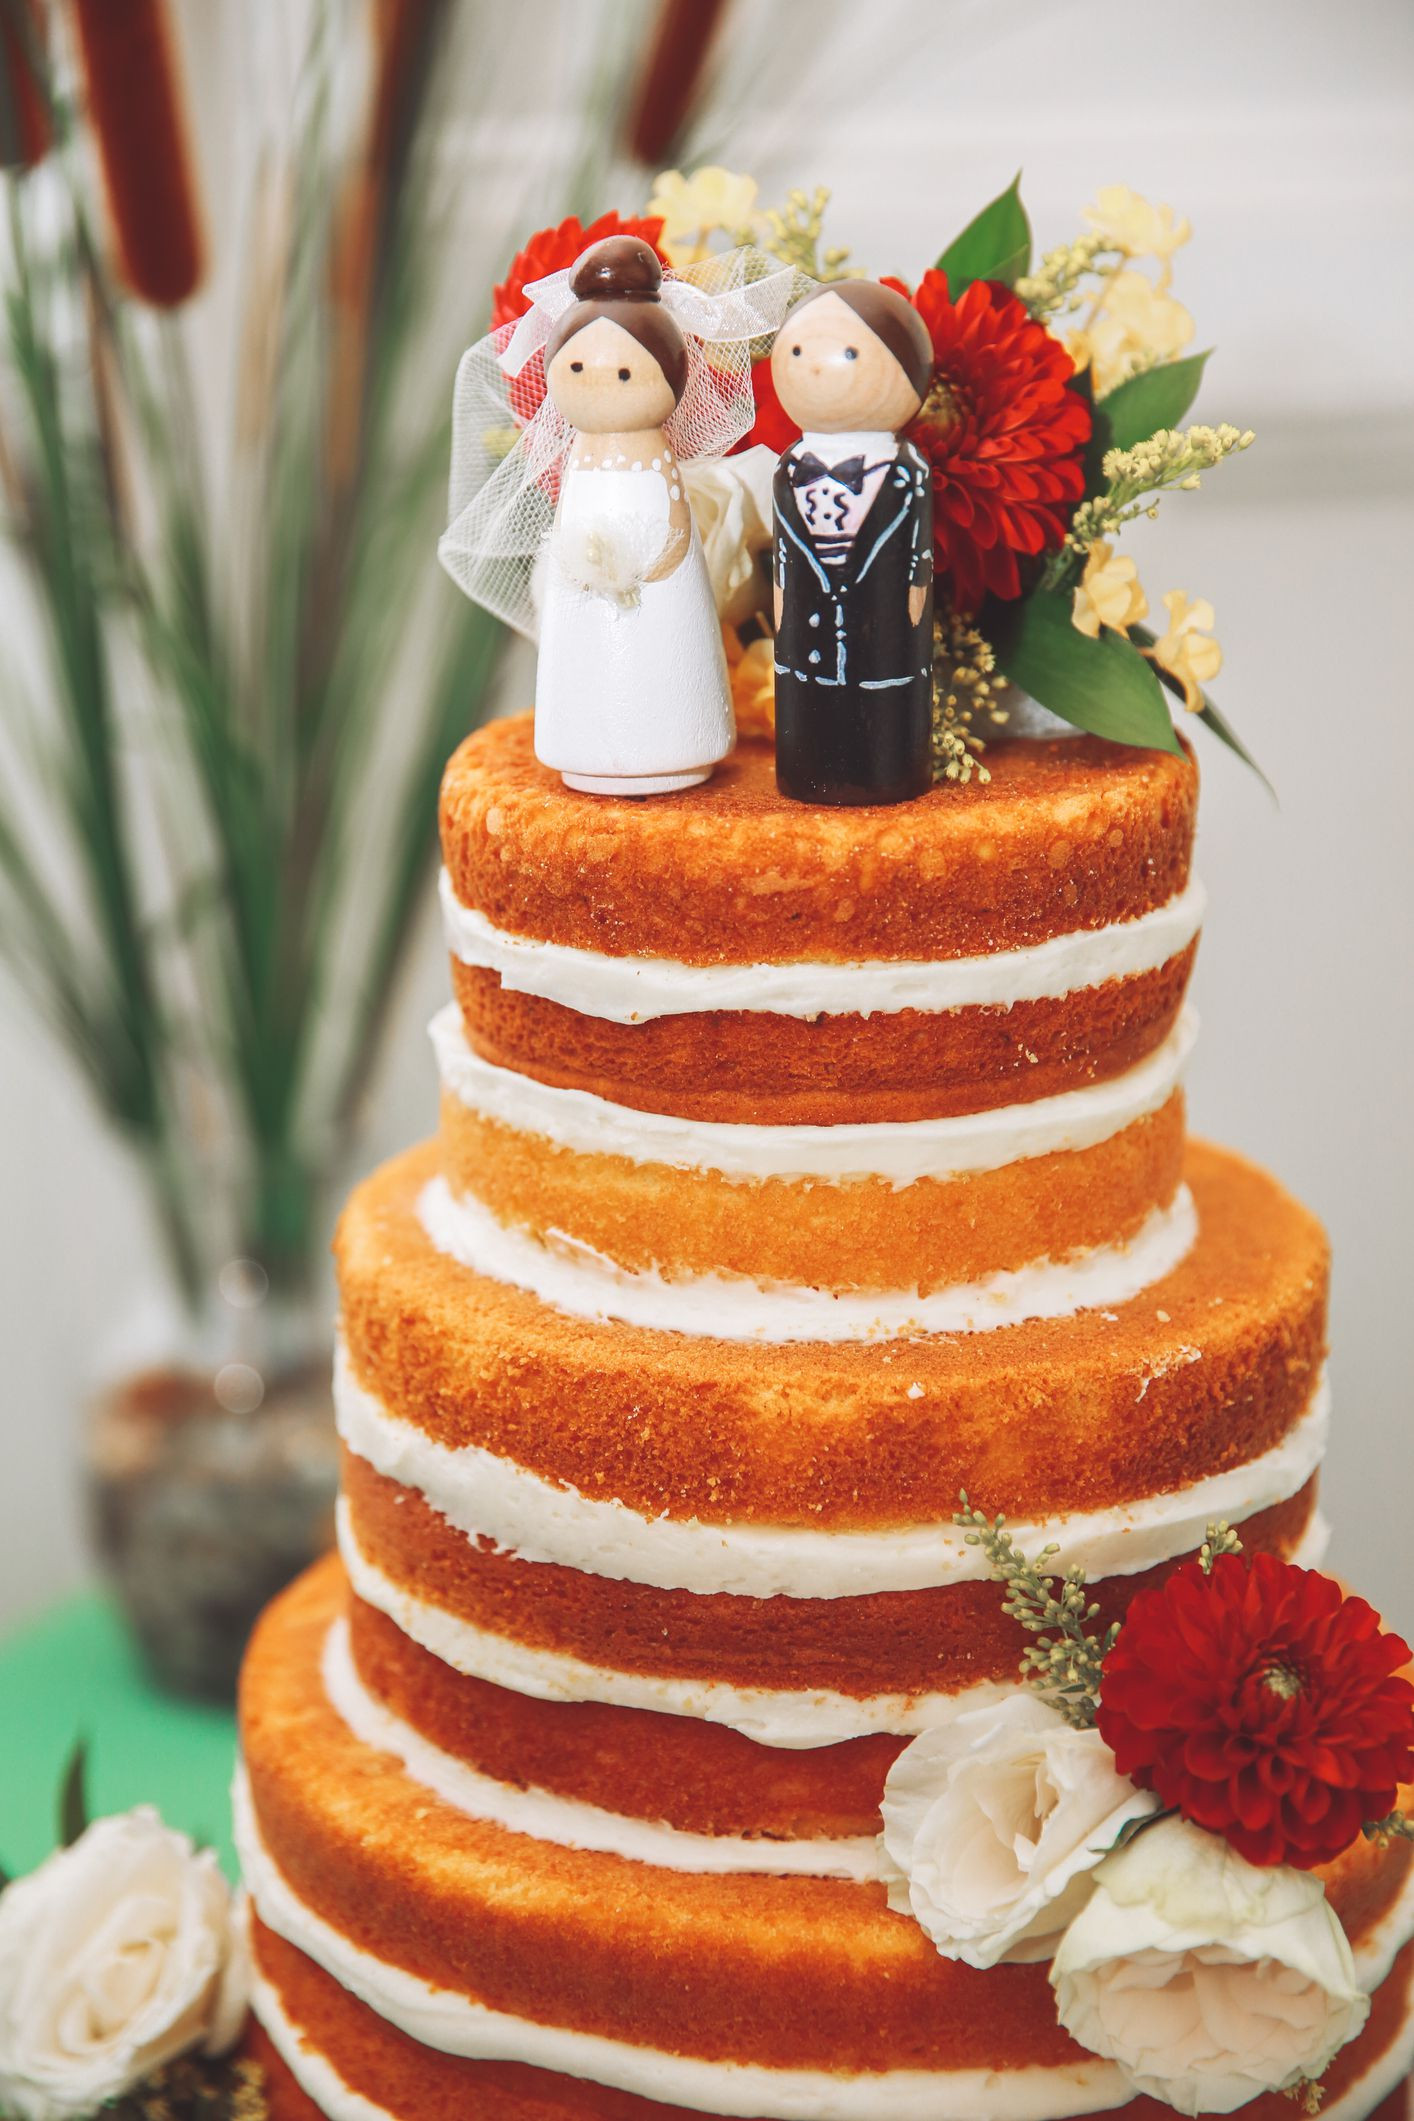 Best ideas about DIY Wedding Cakes . Save or Pin Inspiring Tales of DIY Wedding Cakes Now.